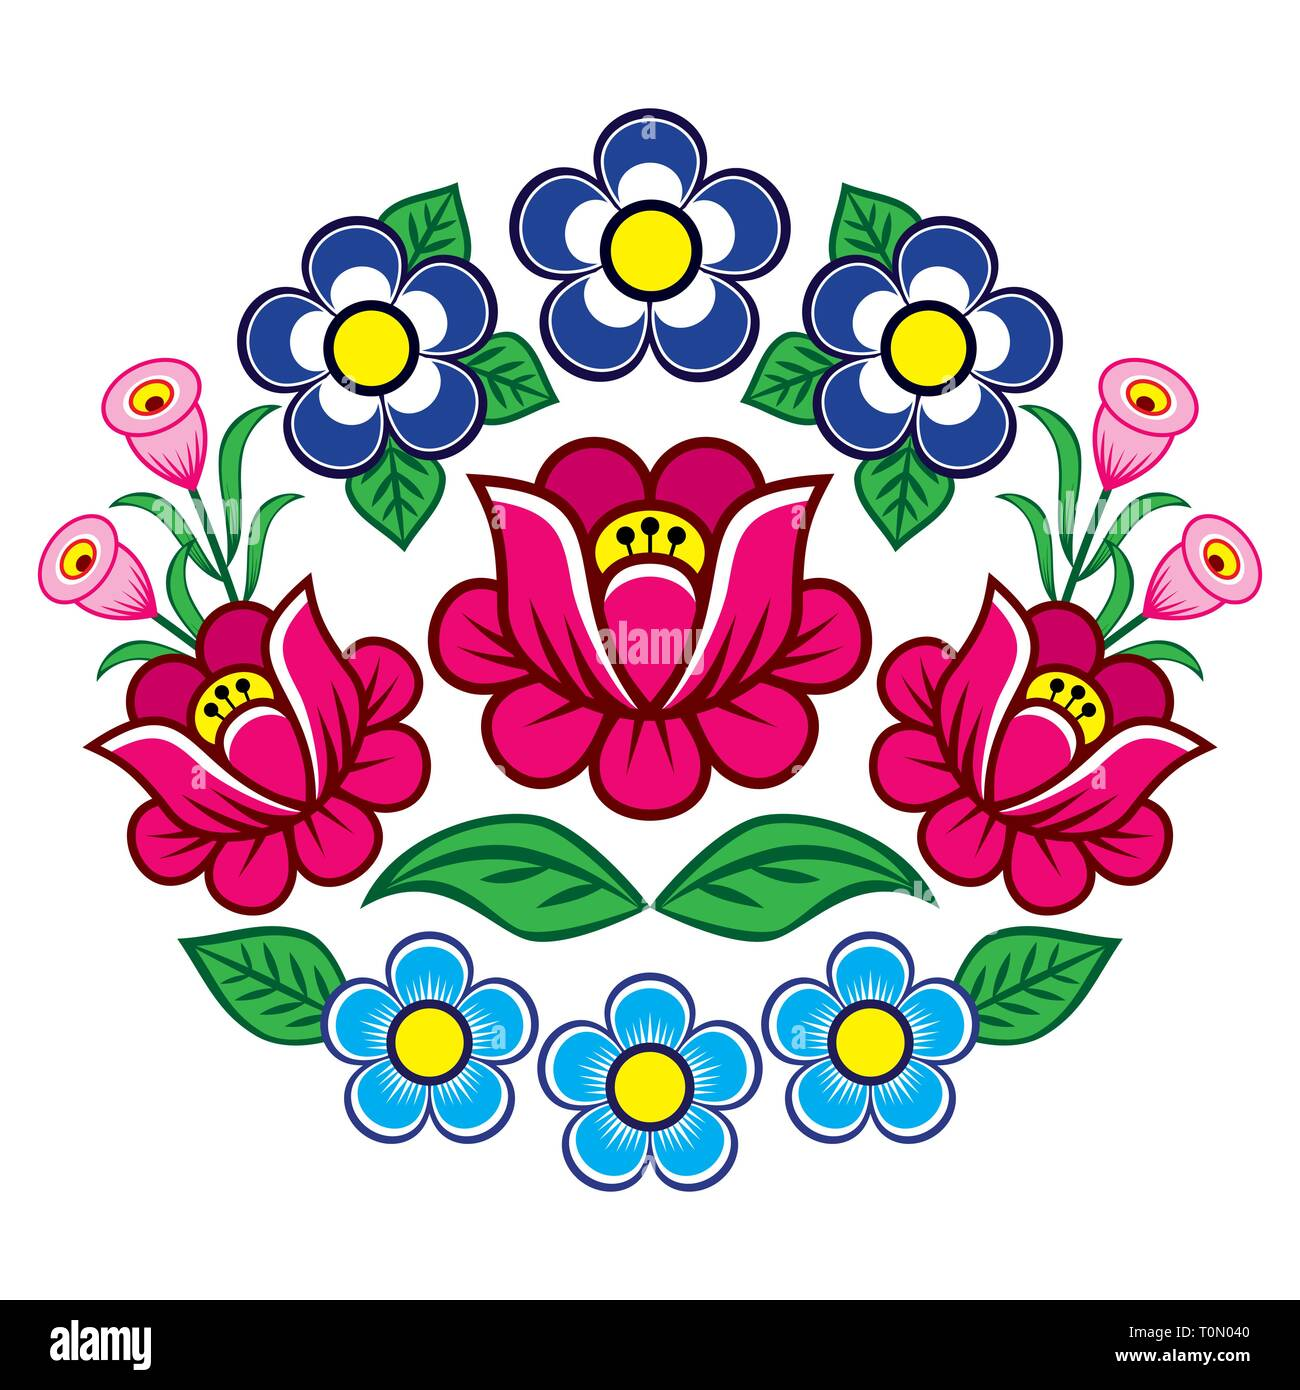 Polish folk art vector floral decoration, Zalipie decorative pattern with roses and leaves - greeting card, wedding invitation. Retro folk design - Stock Image